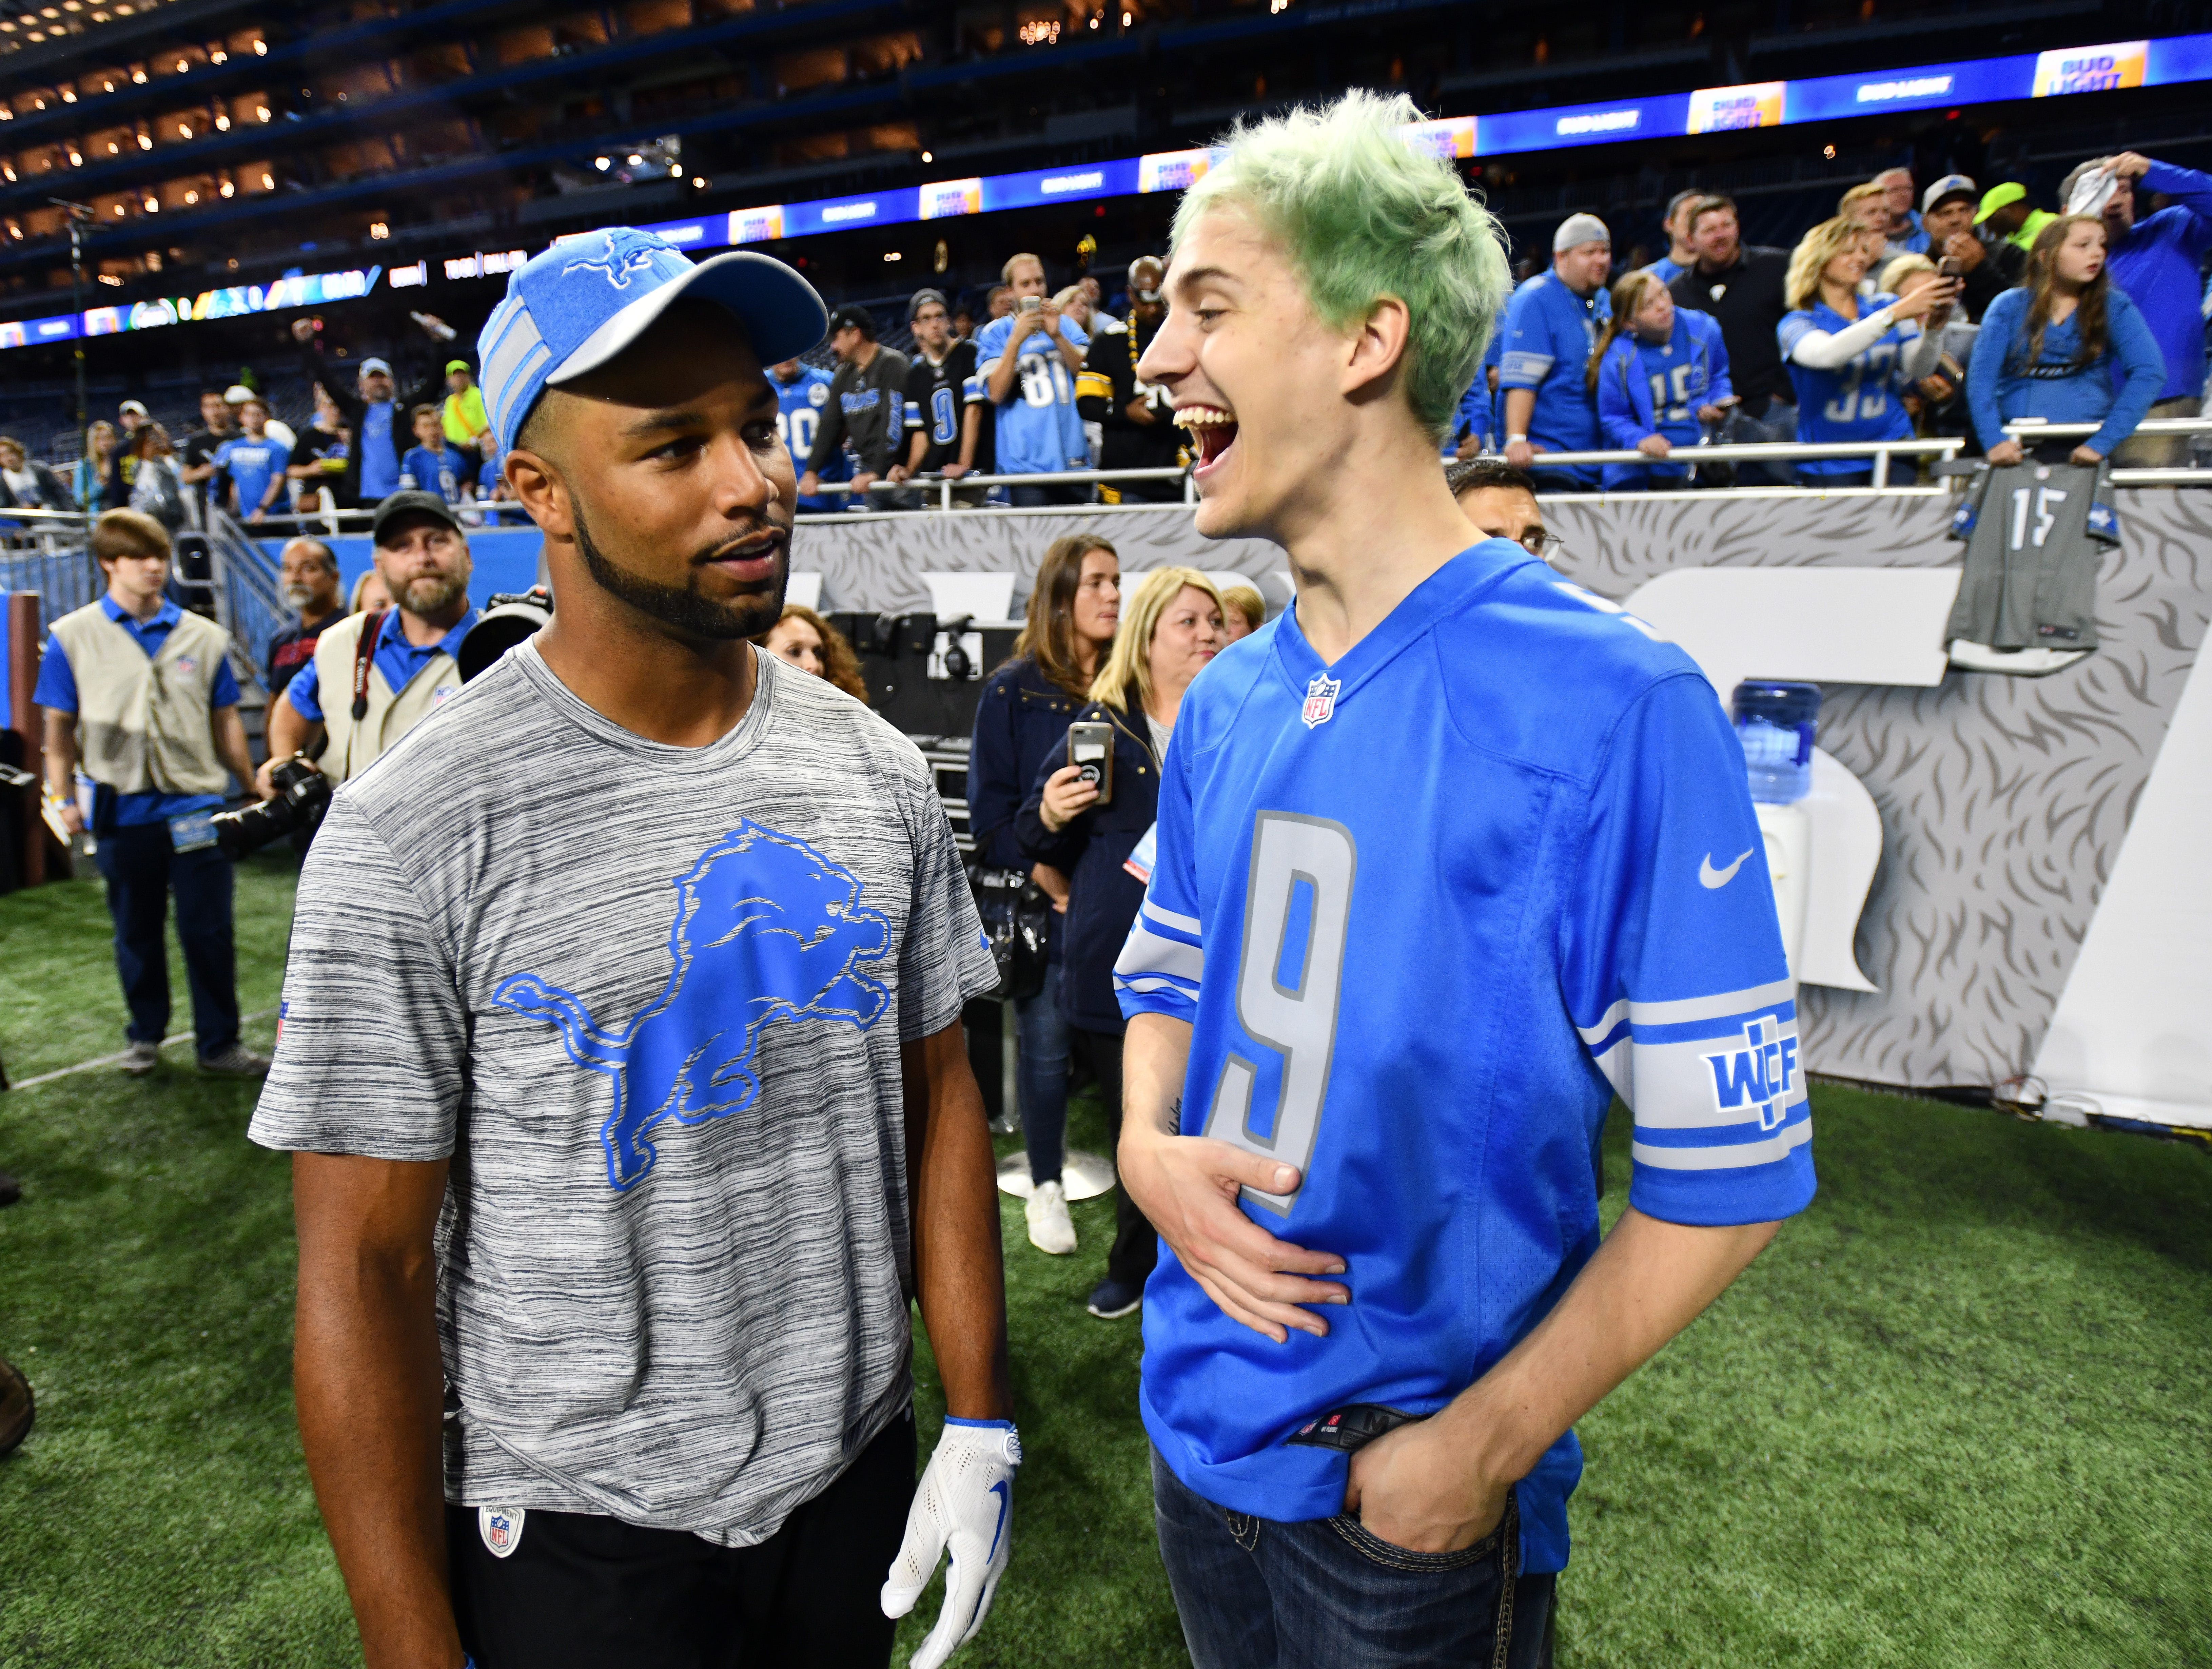 Lions' Golden Tate chats with Tyler Blevins, otherwise known as Ninja, an online gamer whose social media following is in the millions, before Monday Night Football in Detroit